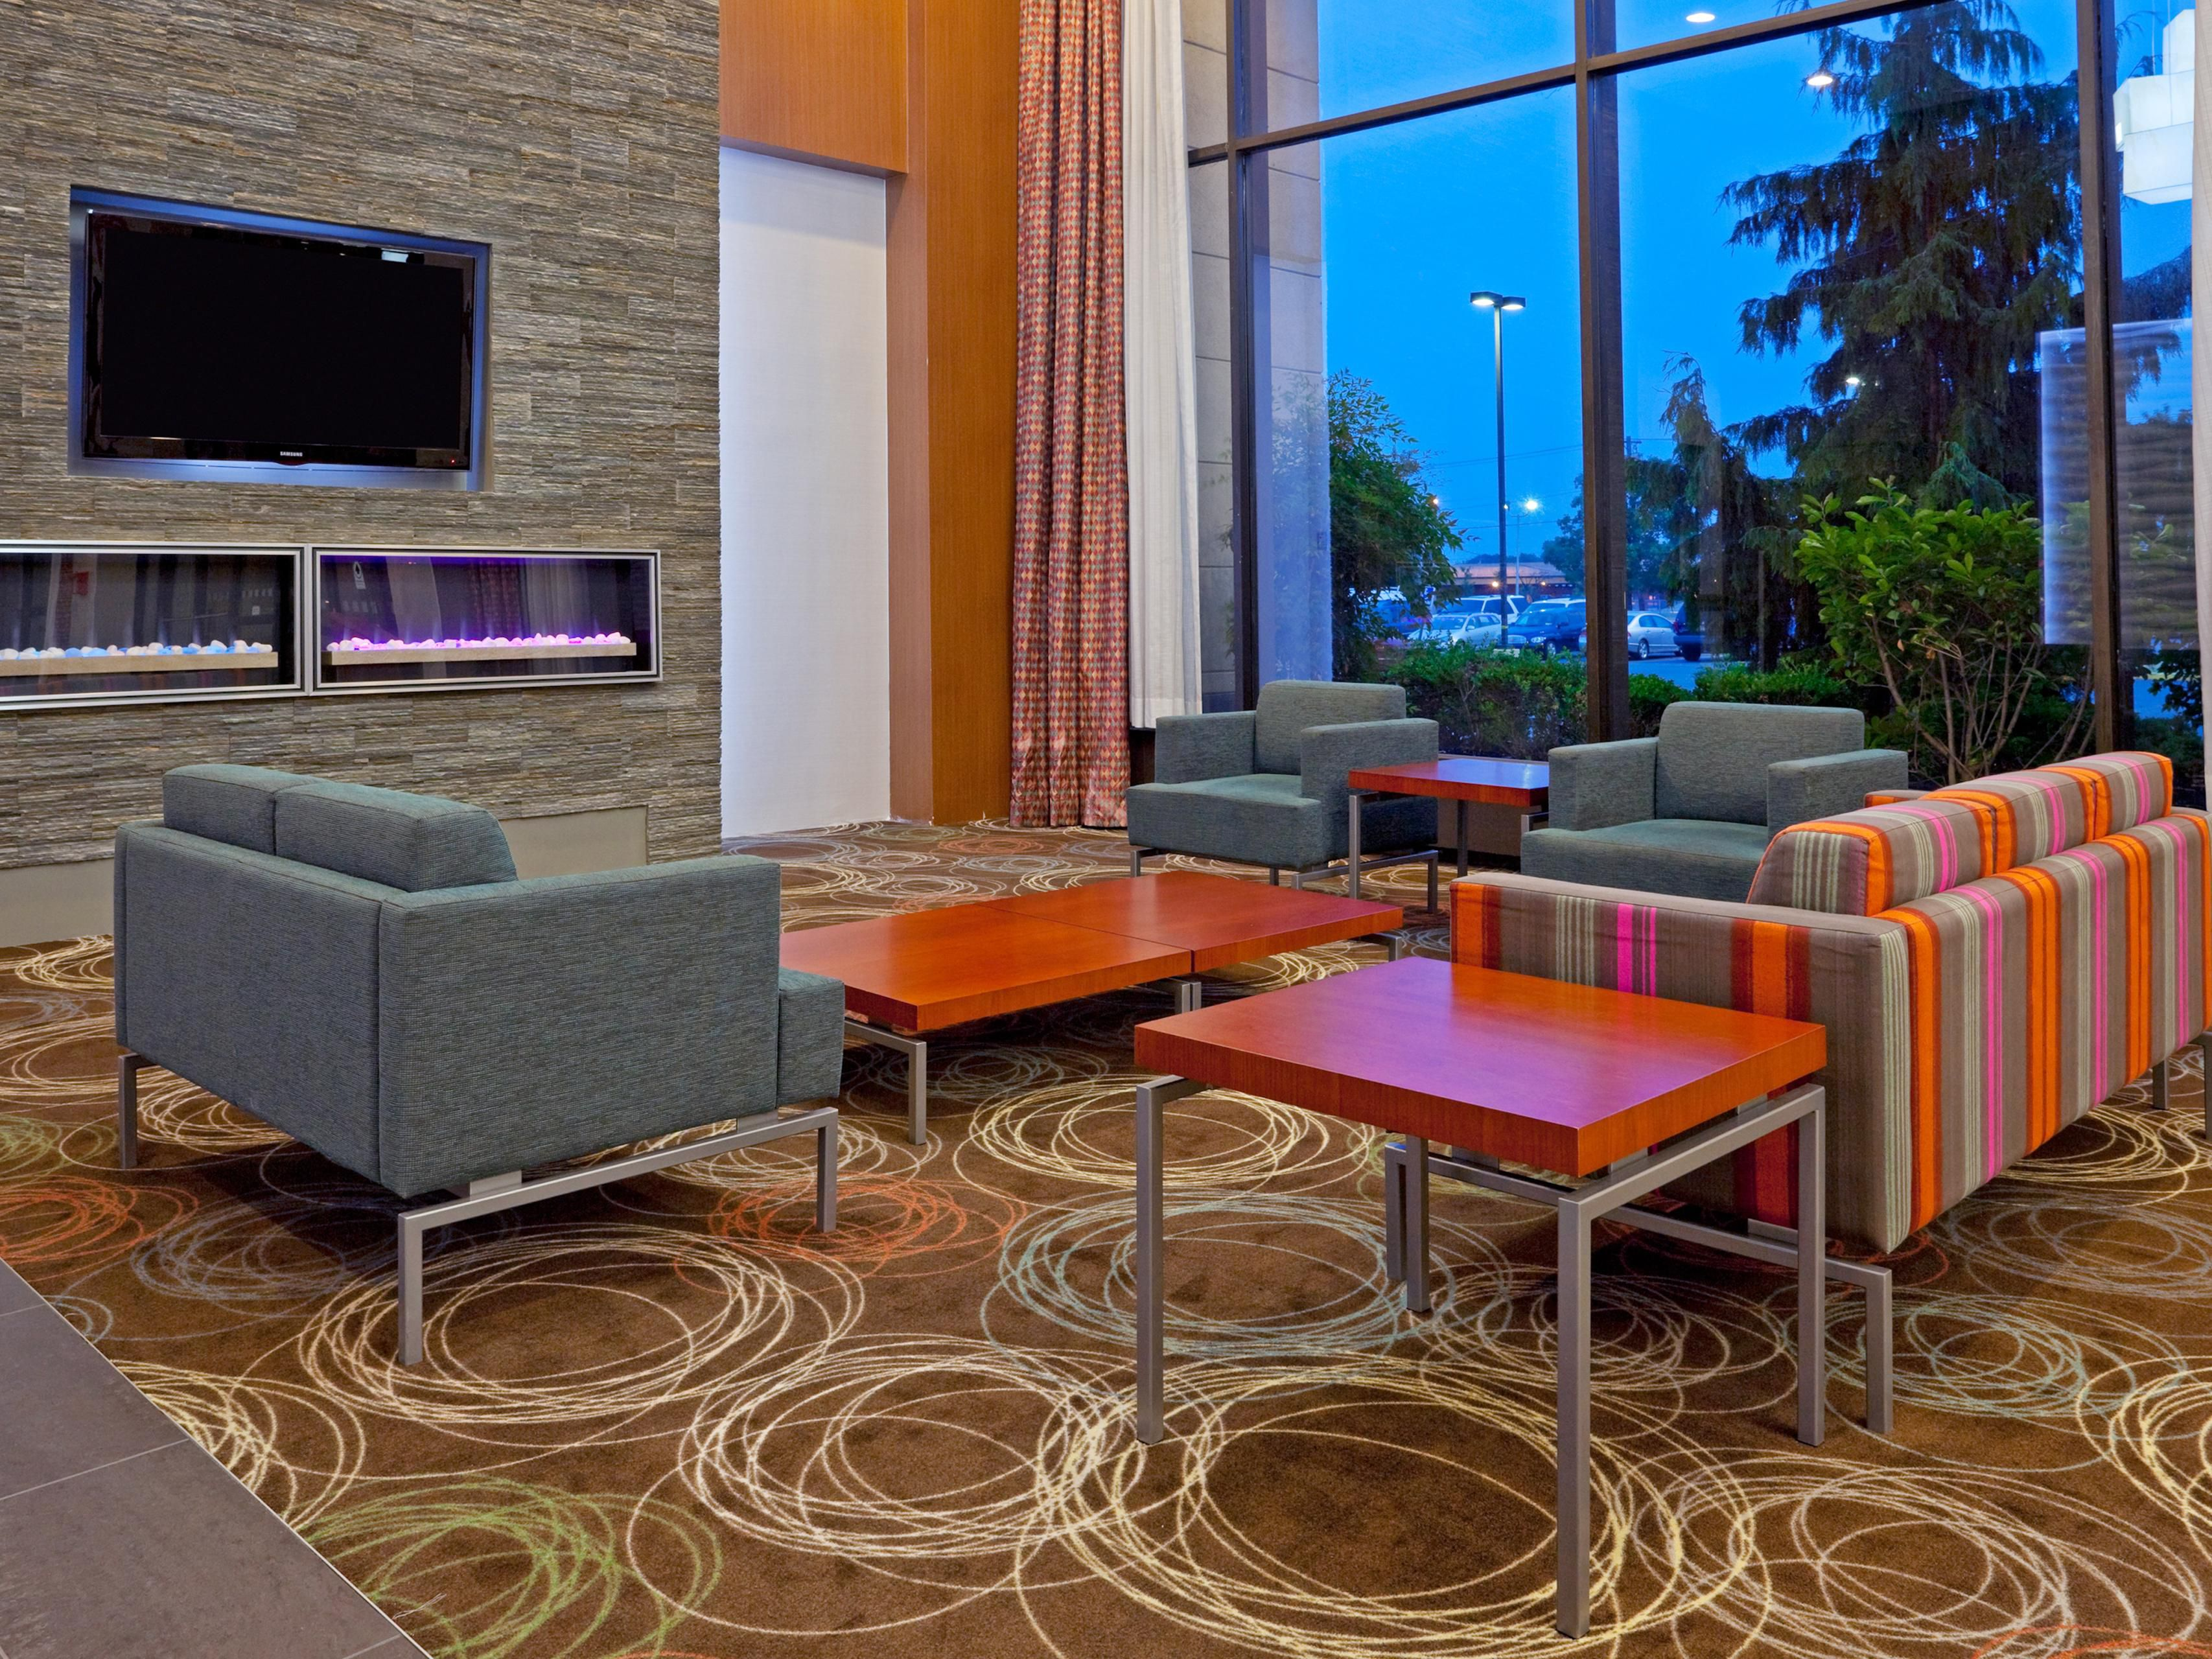 Relax in the Hotel Lobby by the Fire Place at Holiday Inn Stadium